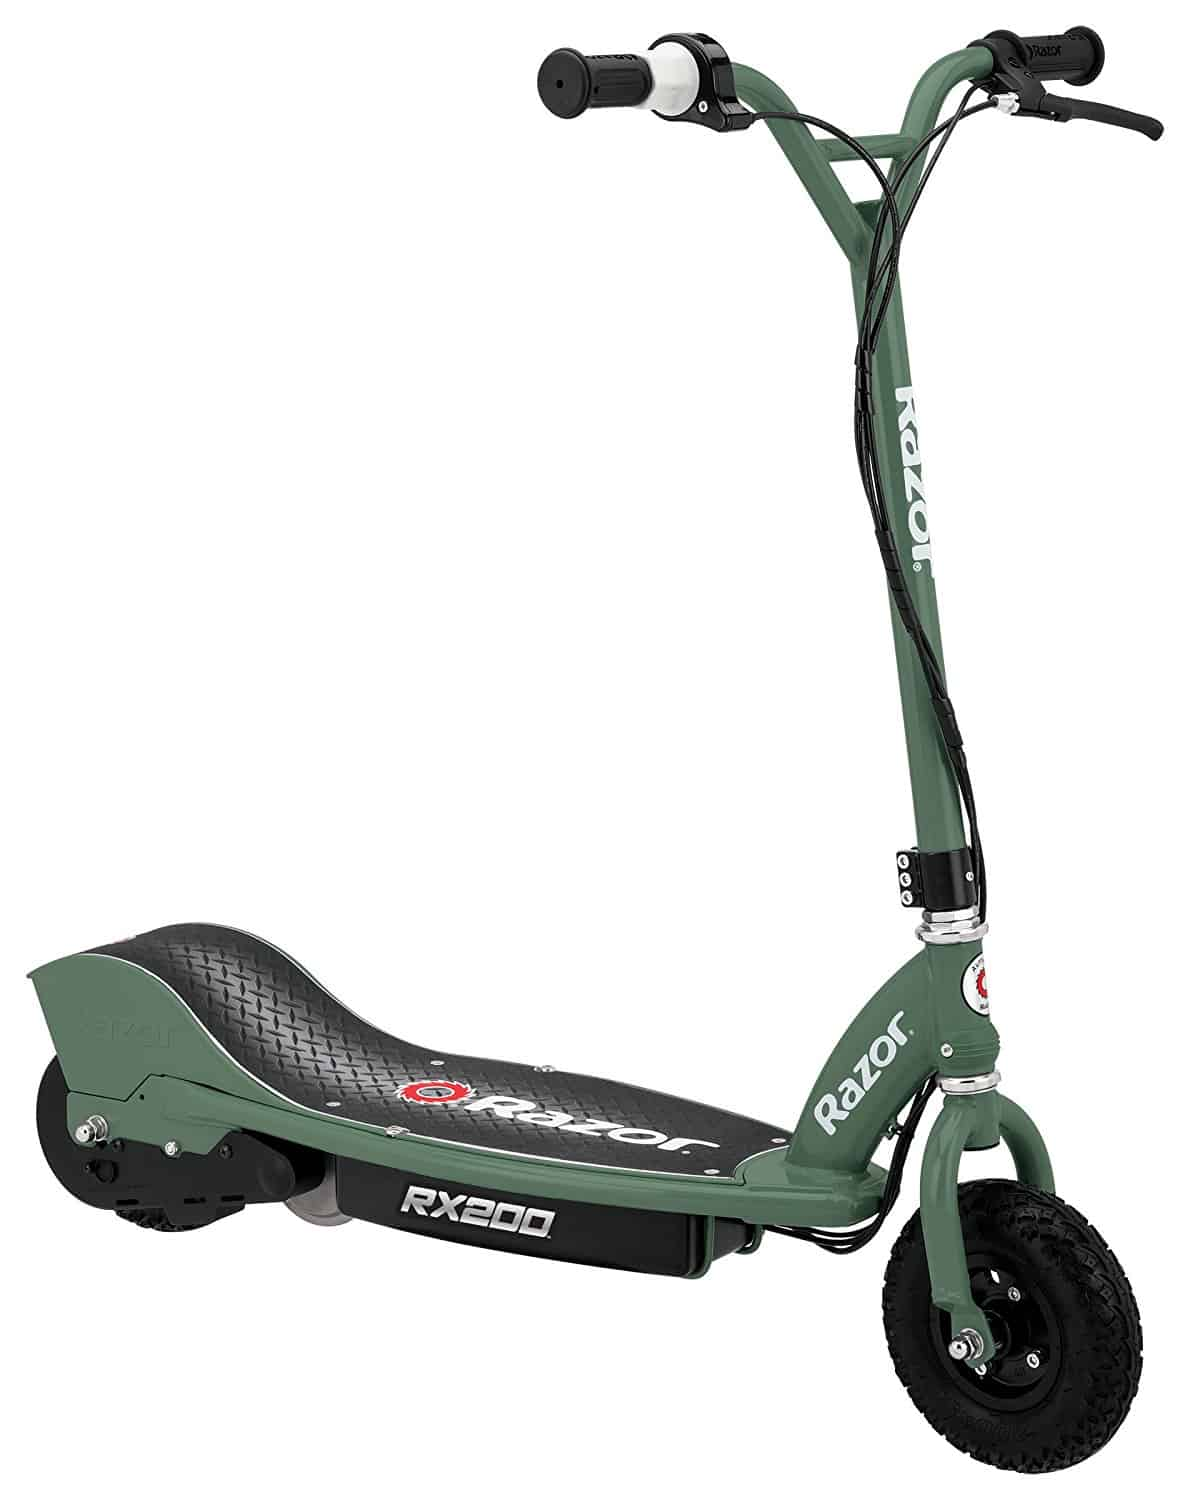 Kids Offroad Electric Scooter – Razor RX200